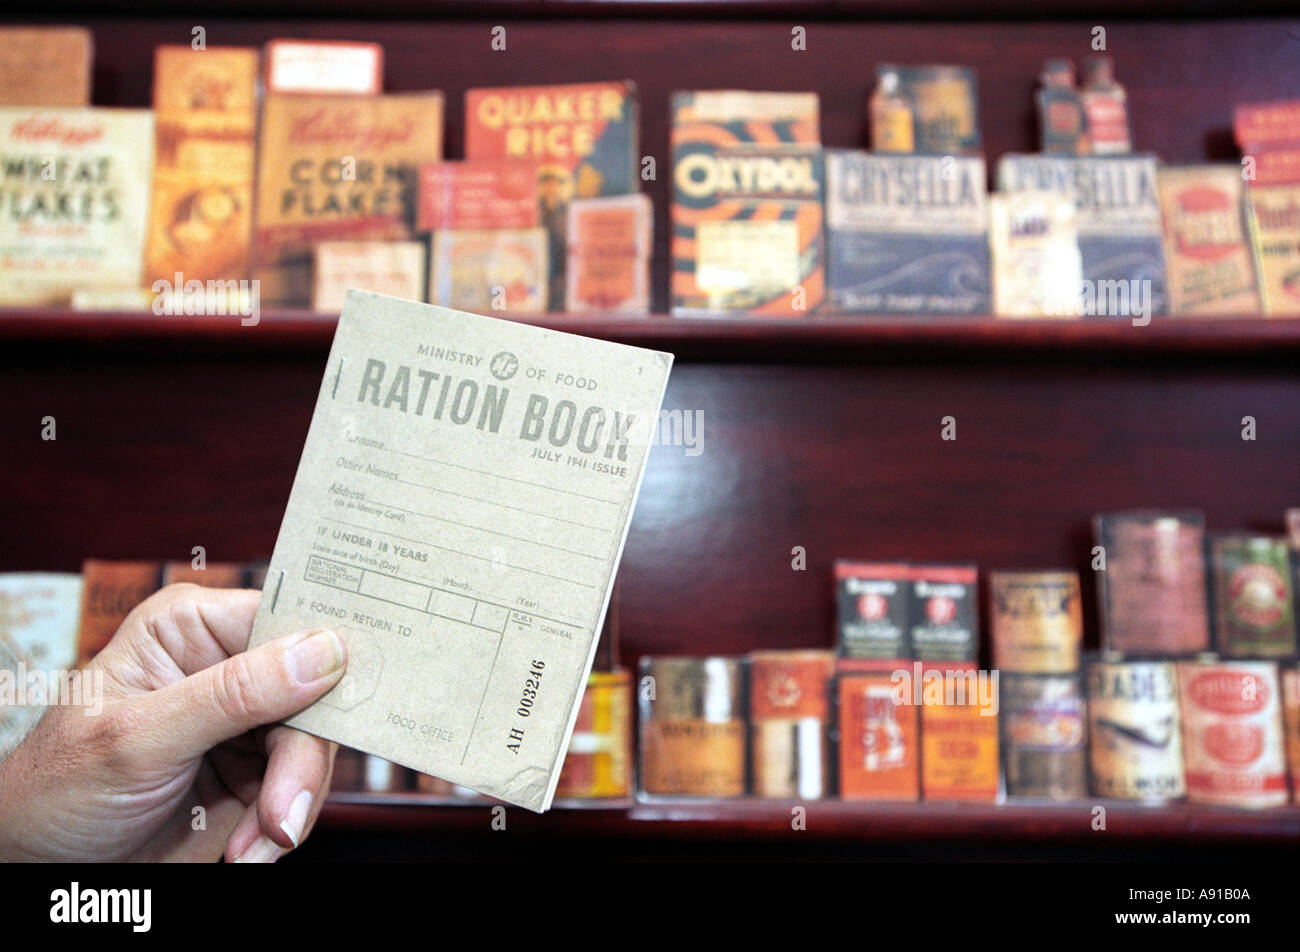 World War 2 ration book with backdrop of that periods foodstuffs - Stock Image